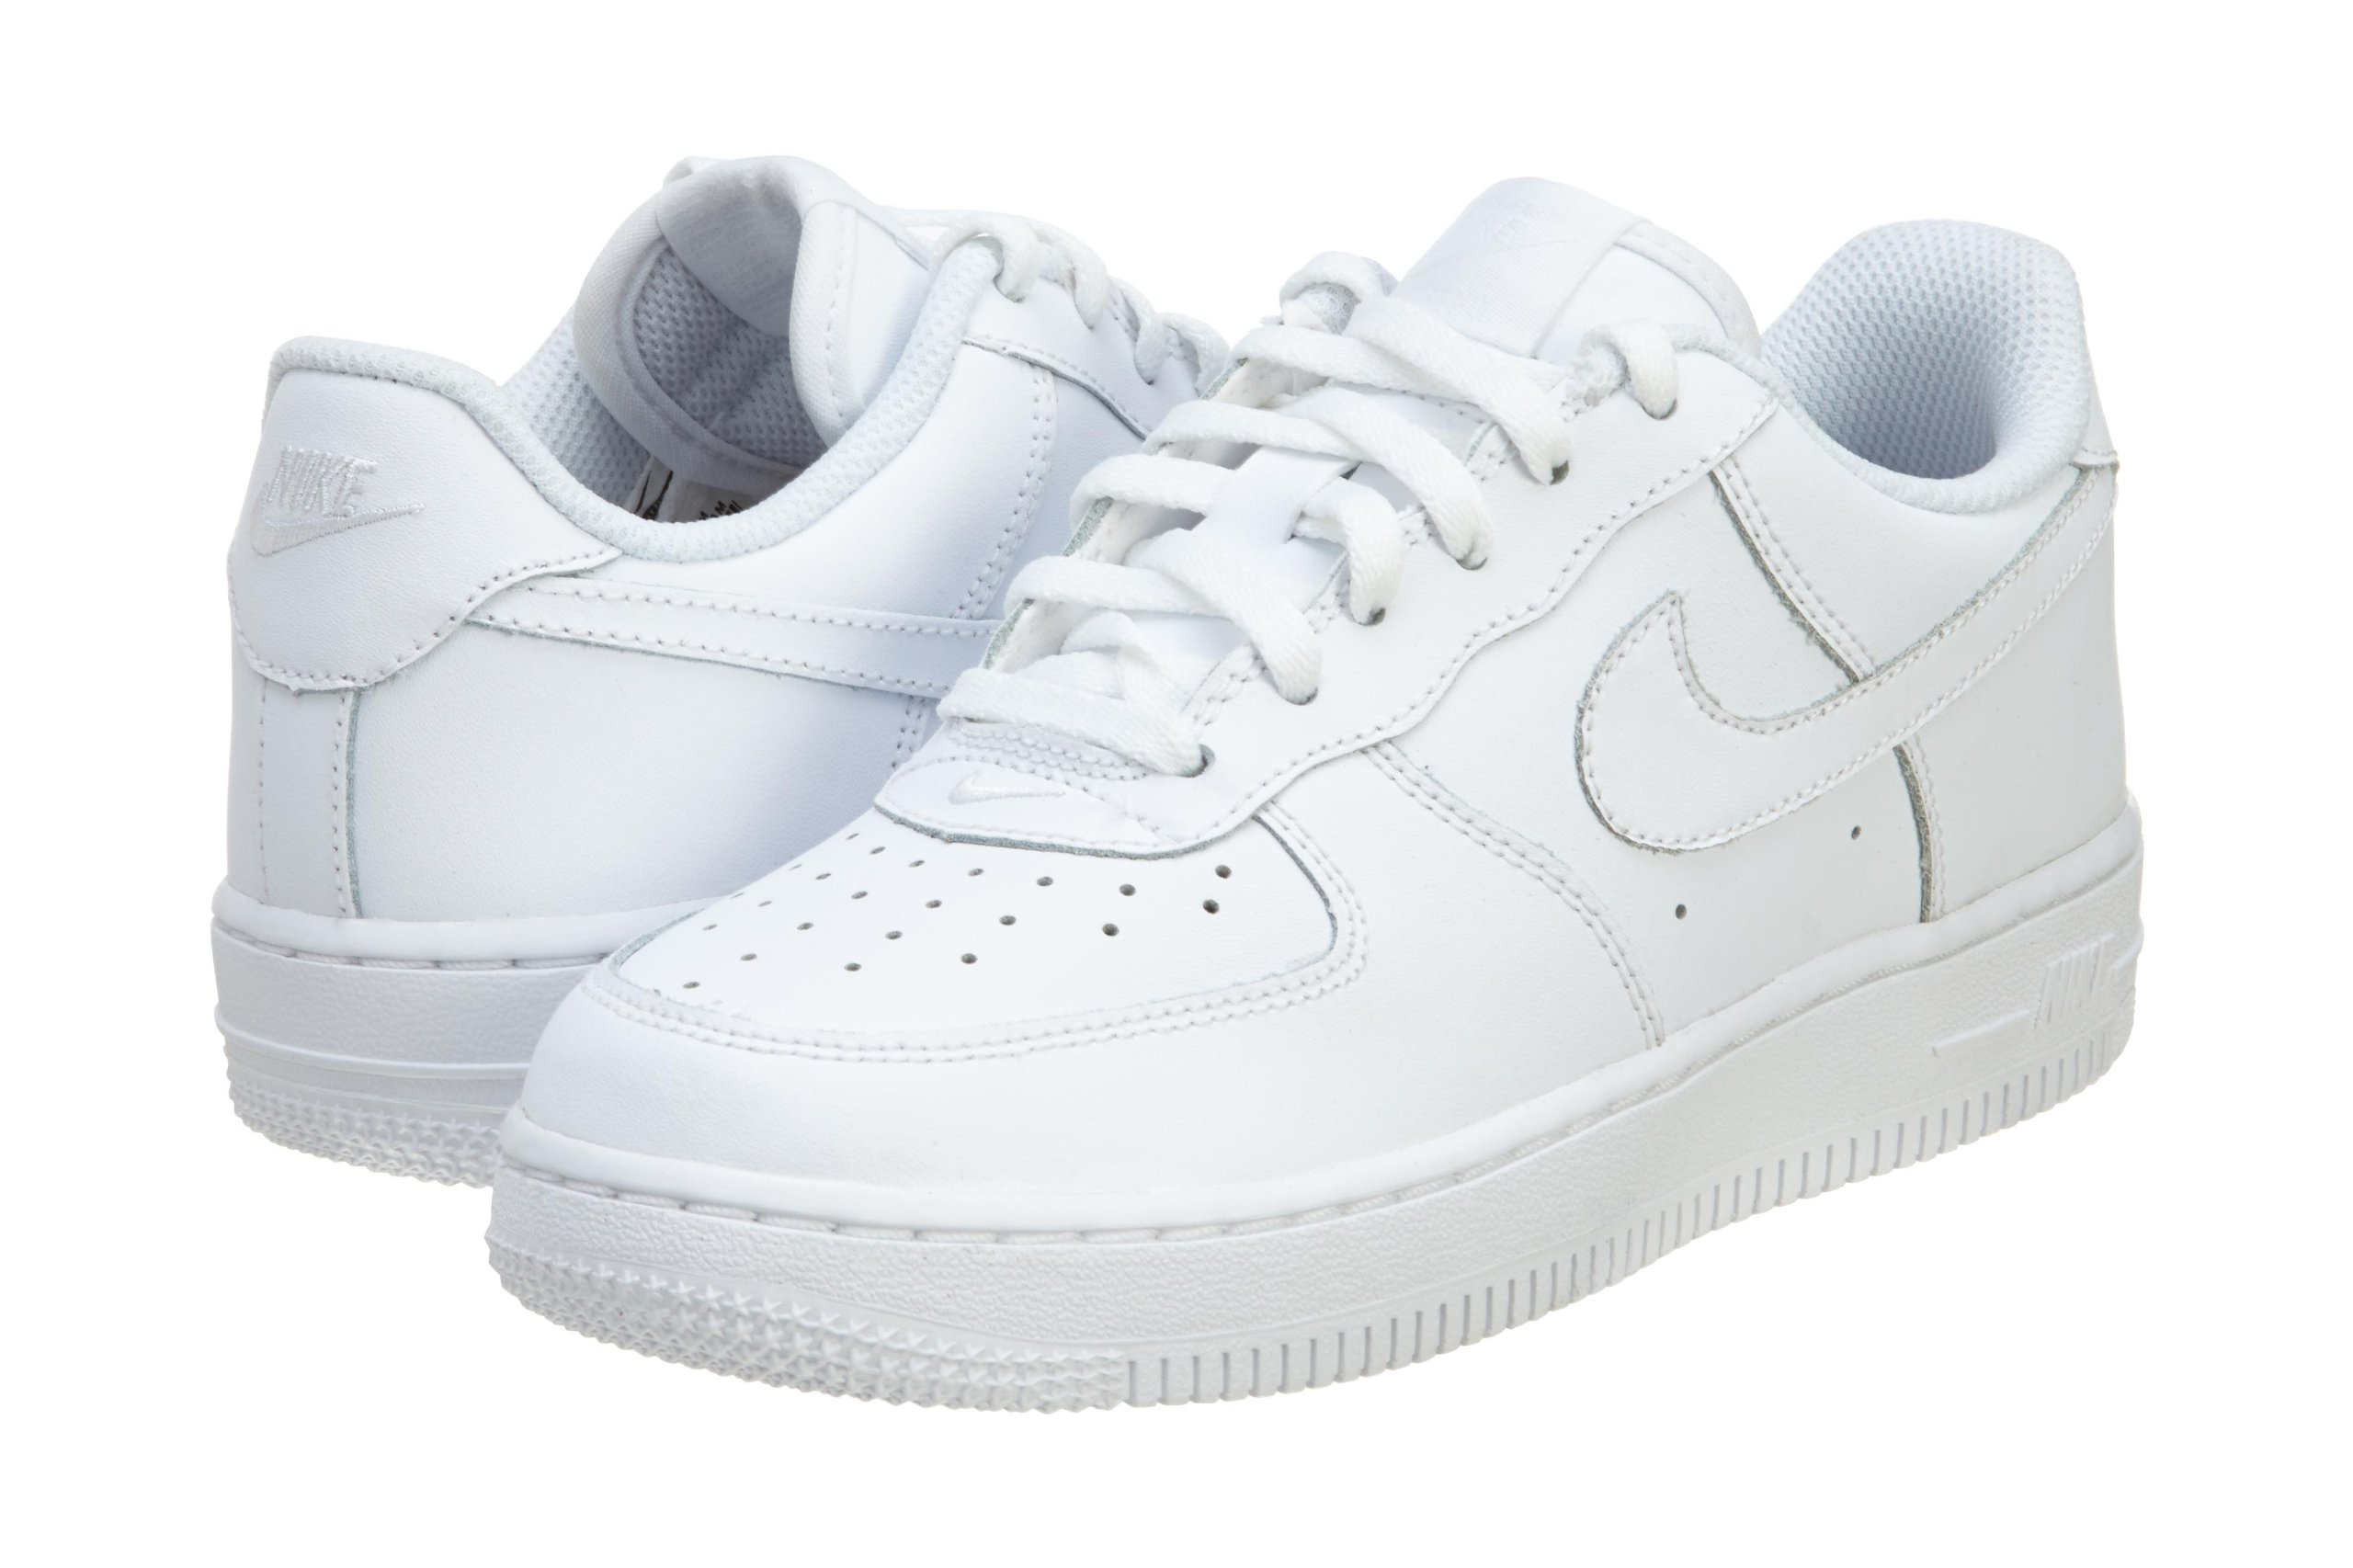 Nike Kid's Air Force 1 Low Preschool Basketball Shoes, White/White-White 13.5C